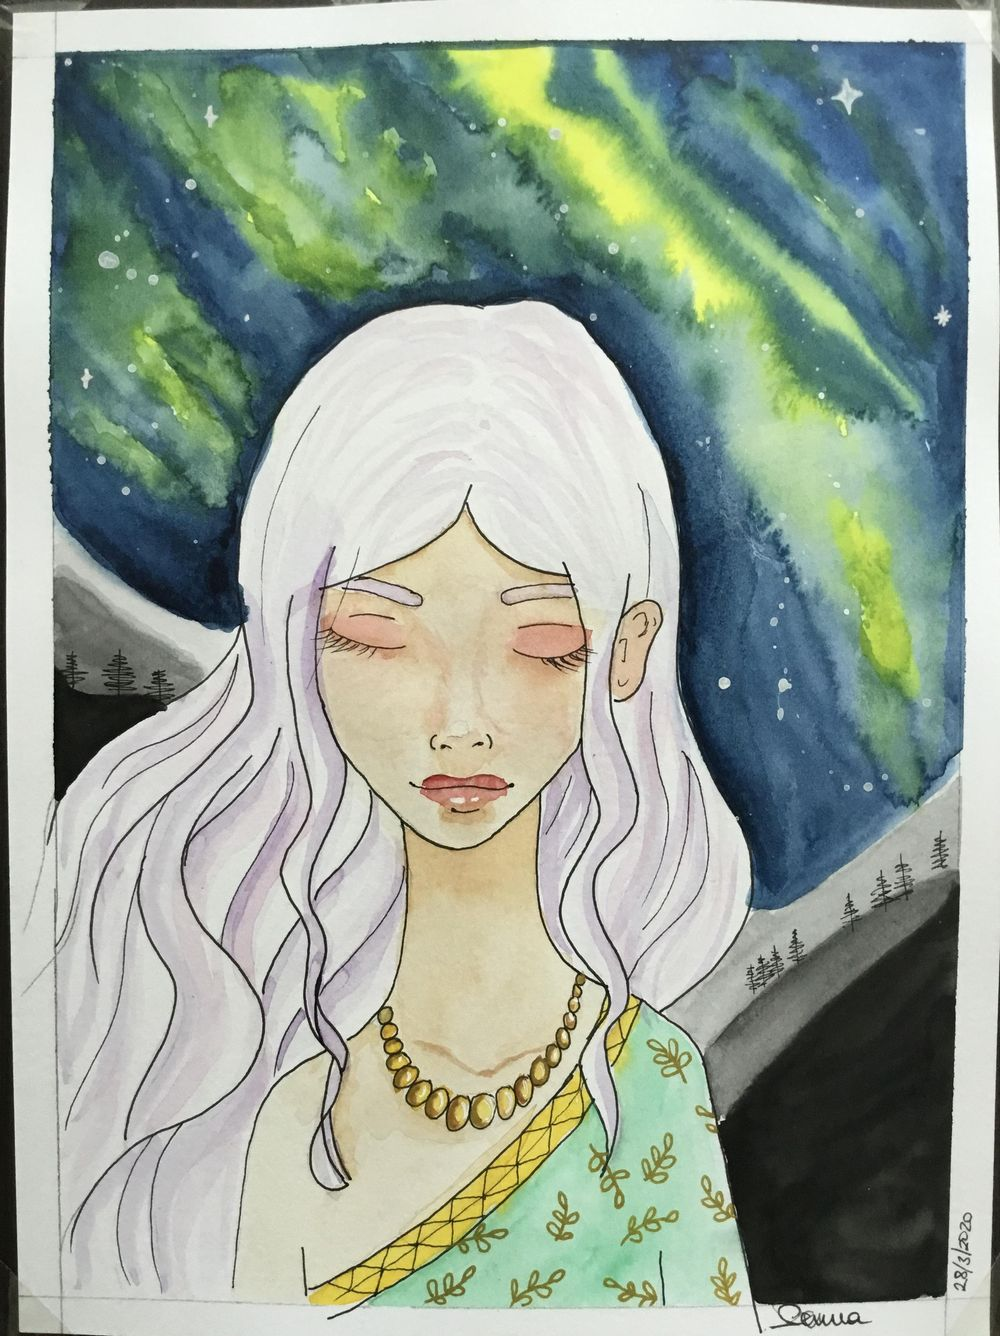 Watercolor Galaxy Painting 2-Manga portrait with nothern light - image 1 - student project